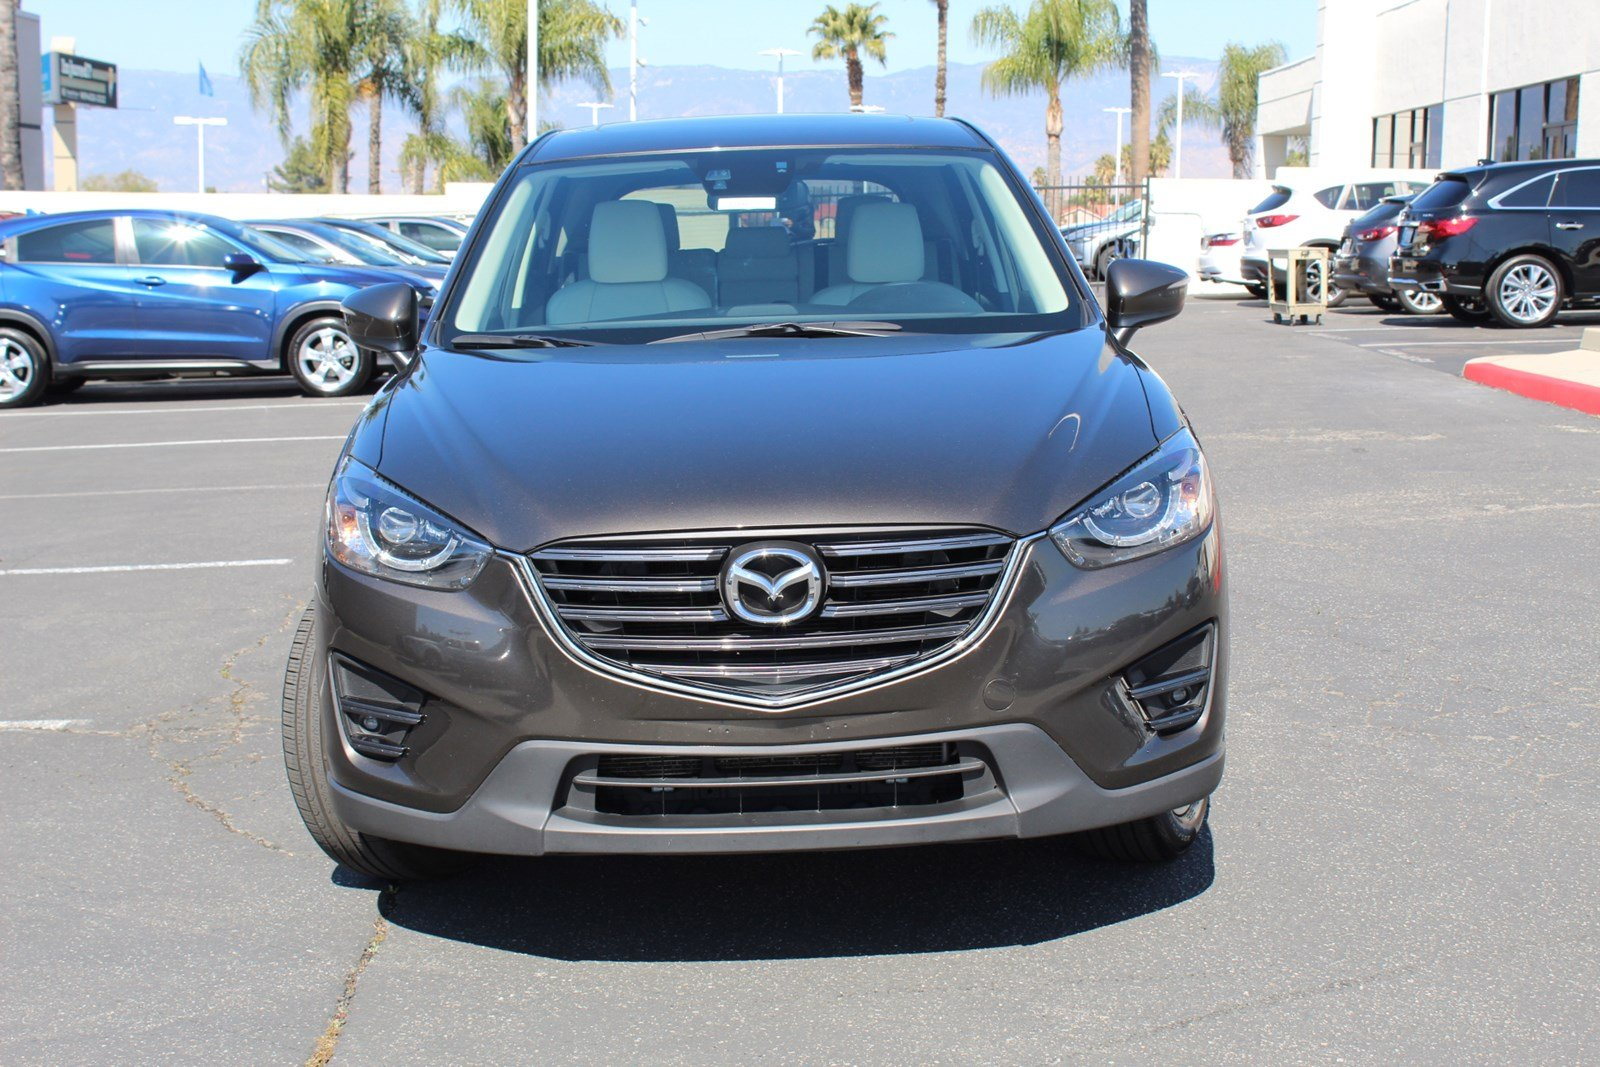 PreOwned Mazda CX Grand Touring Sport Utility In Loma - Mazda of redlands